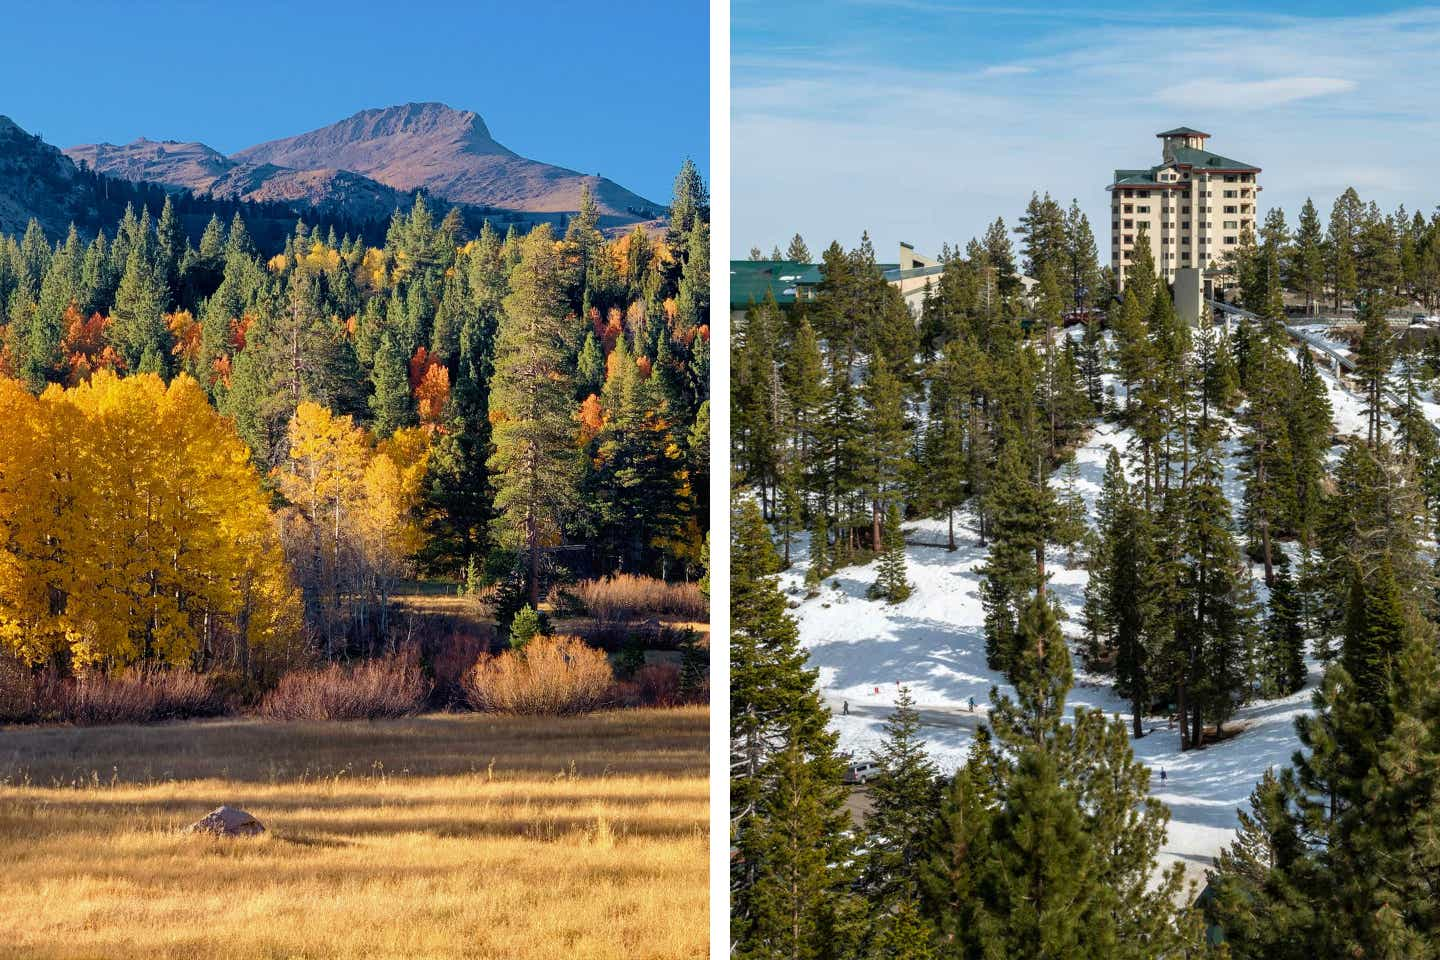 Left: Jobs Peak appears in the distance as autumn foliage from the trees appear in the foreground. Right: Exterior shot of the Tahoe Ridge Resort and the hillside landscape.